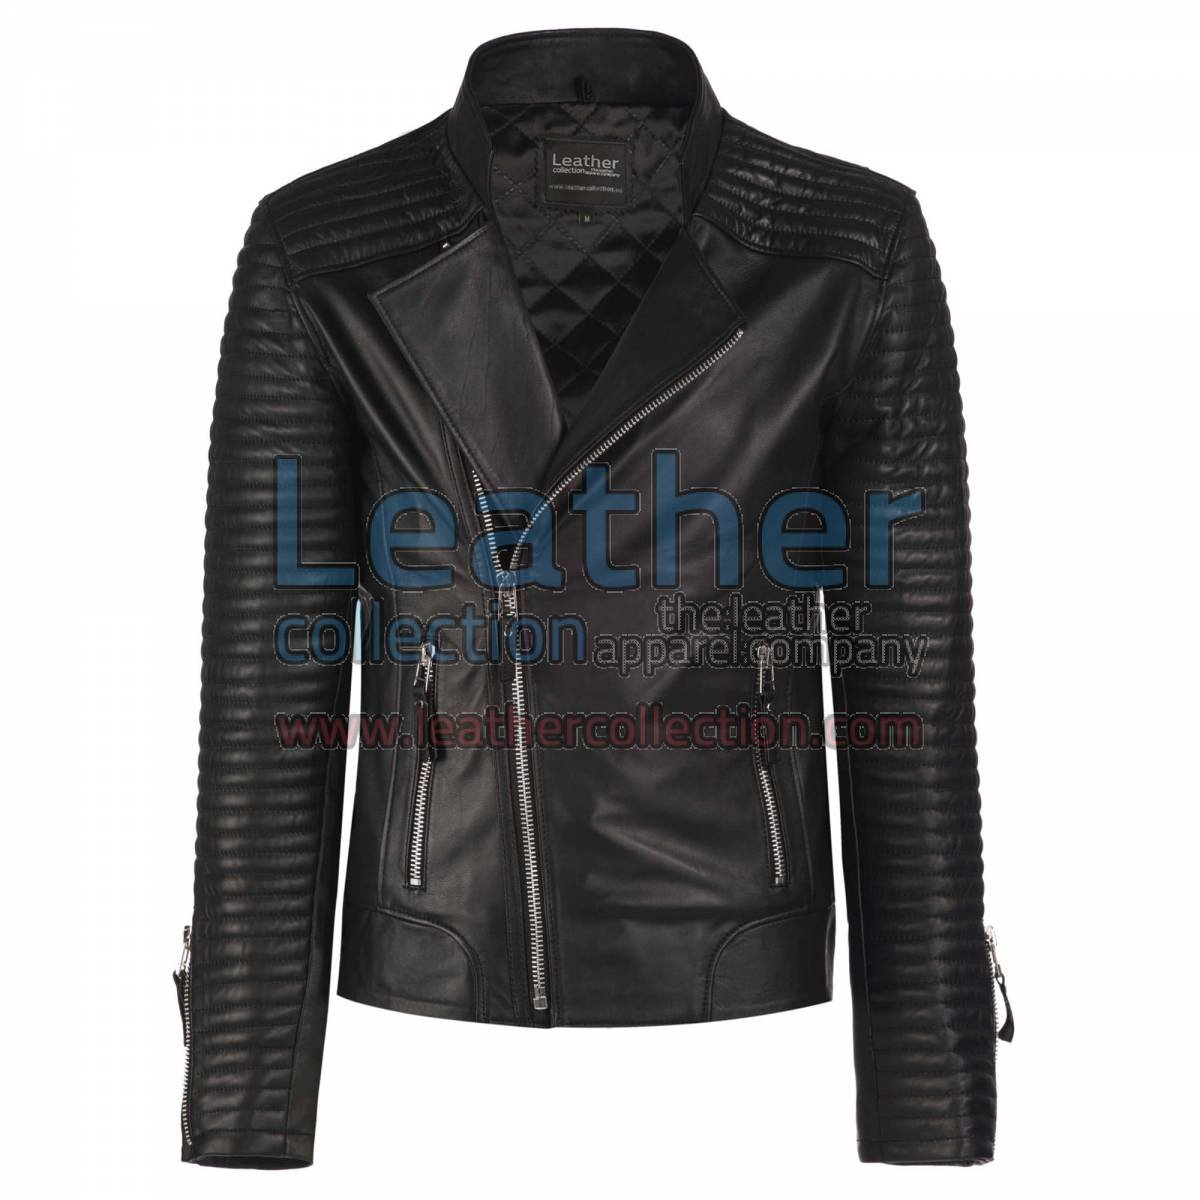 The Hunter Biker Leather Jacket